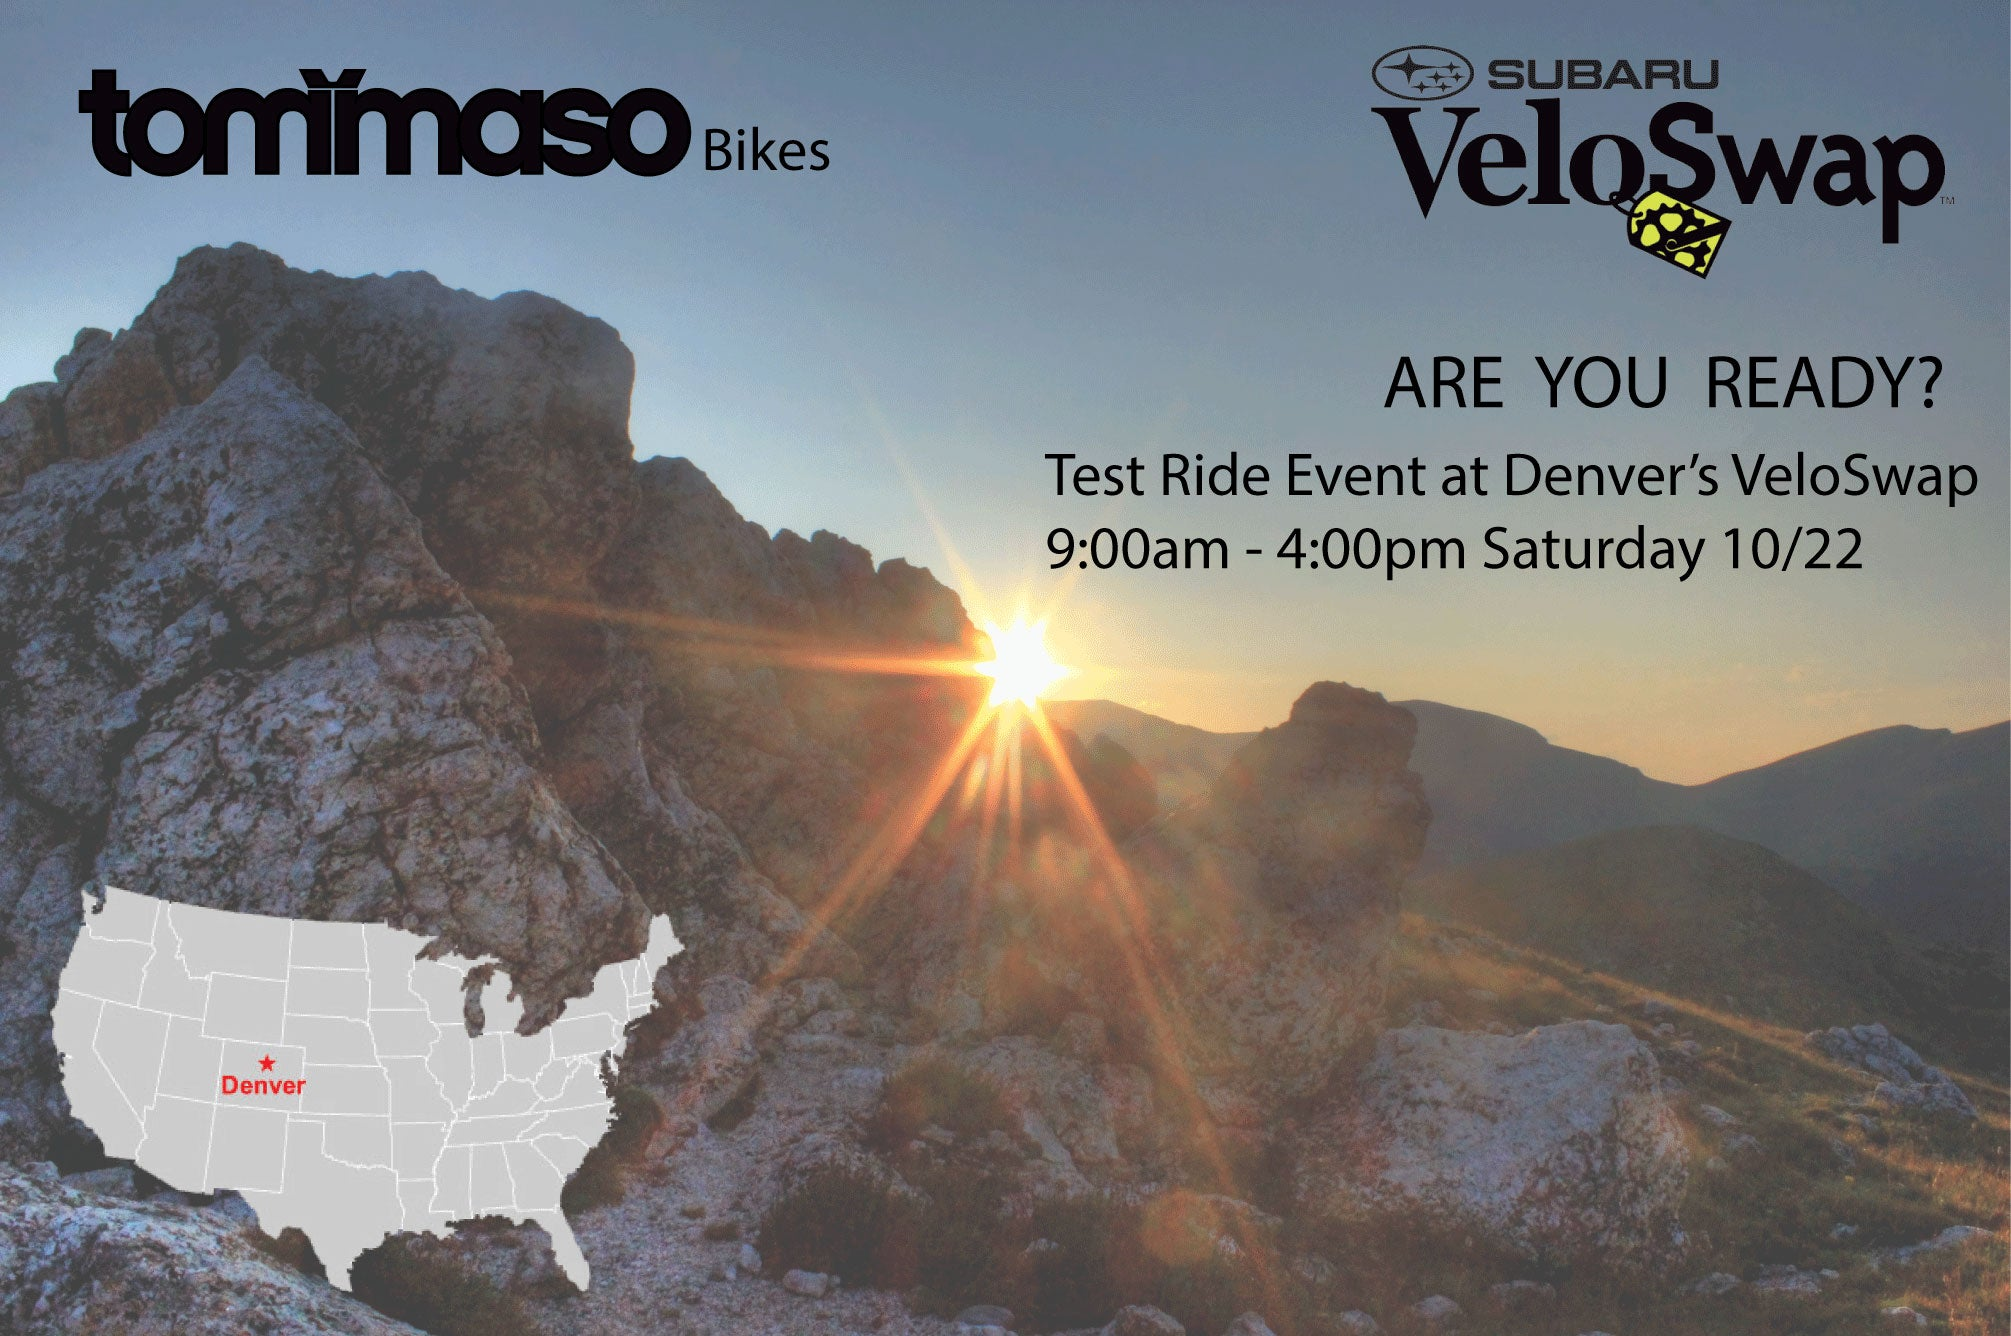 Tommaso Test Ride Event at Veloswap Denver, CO